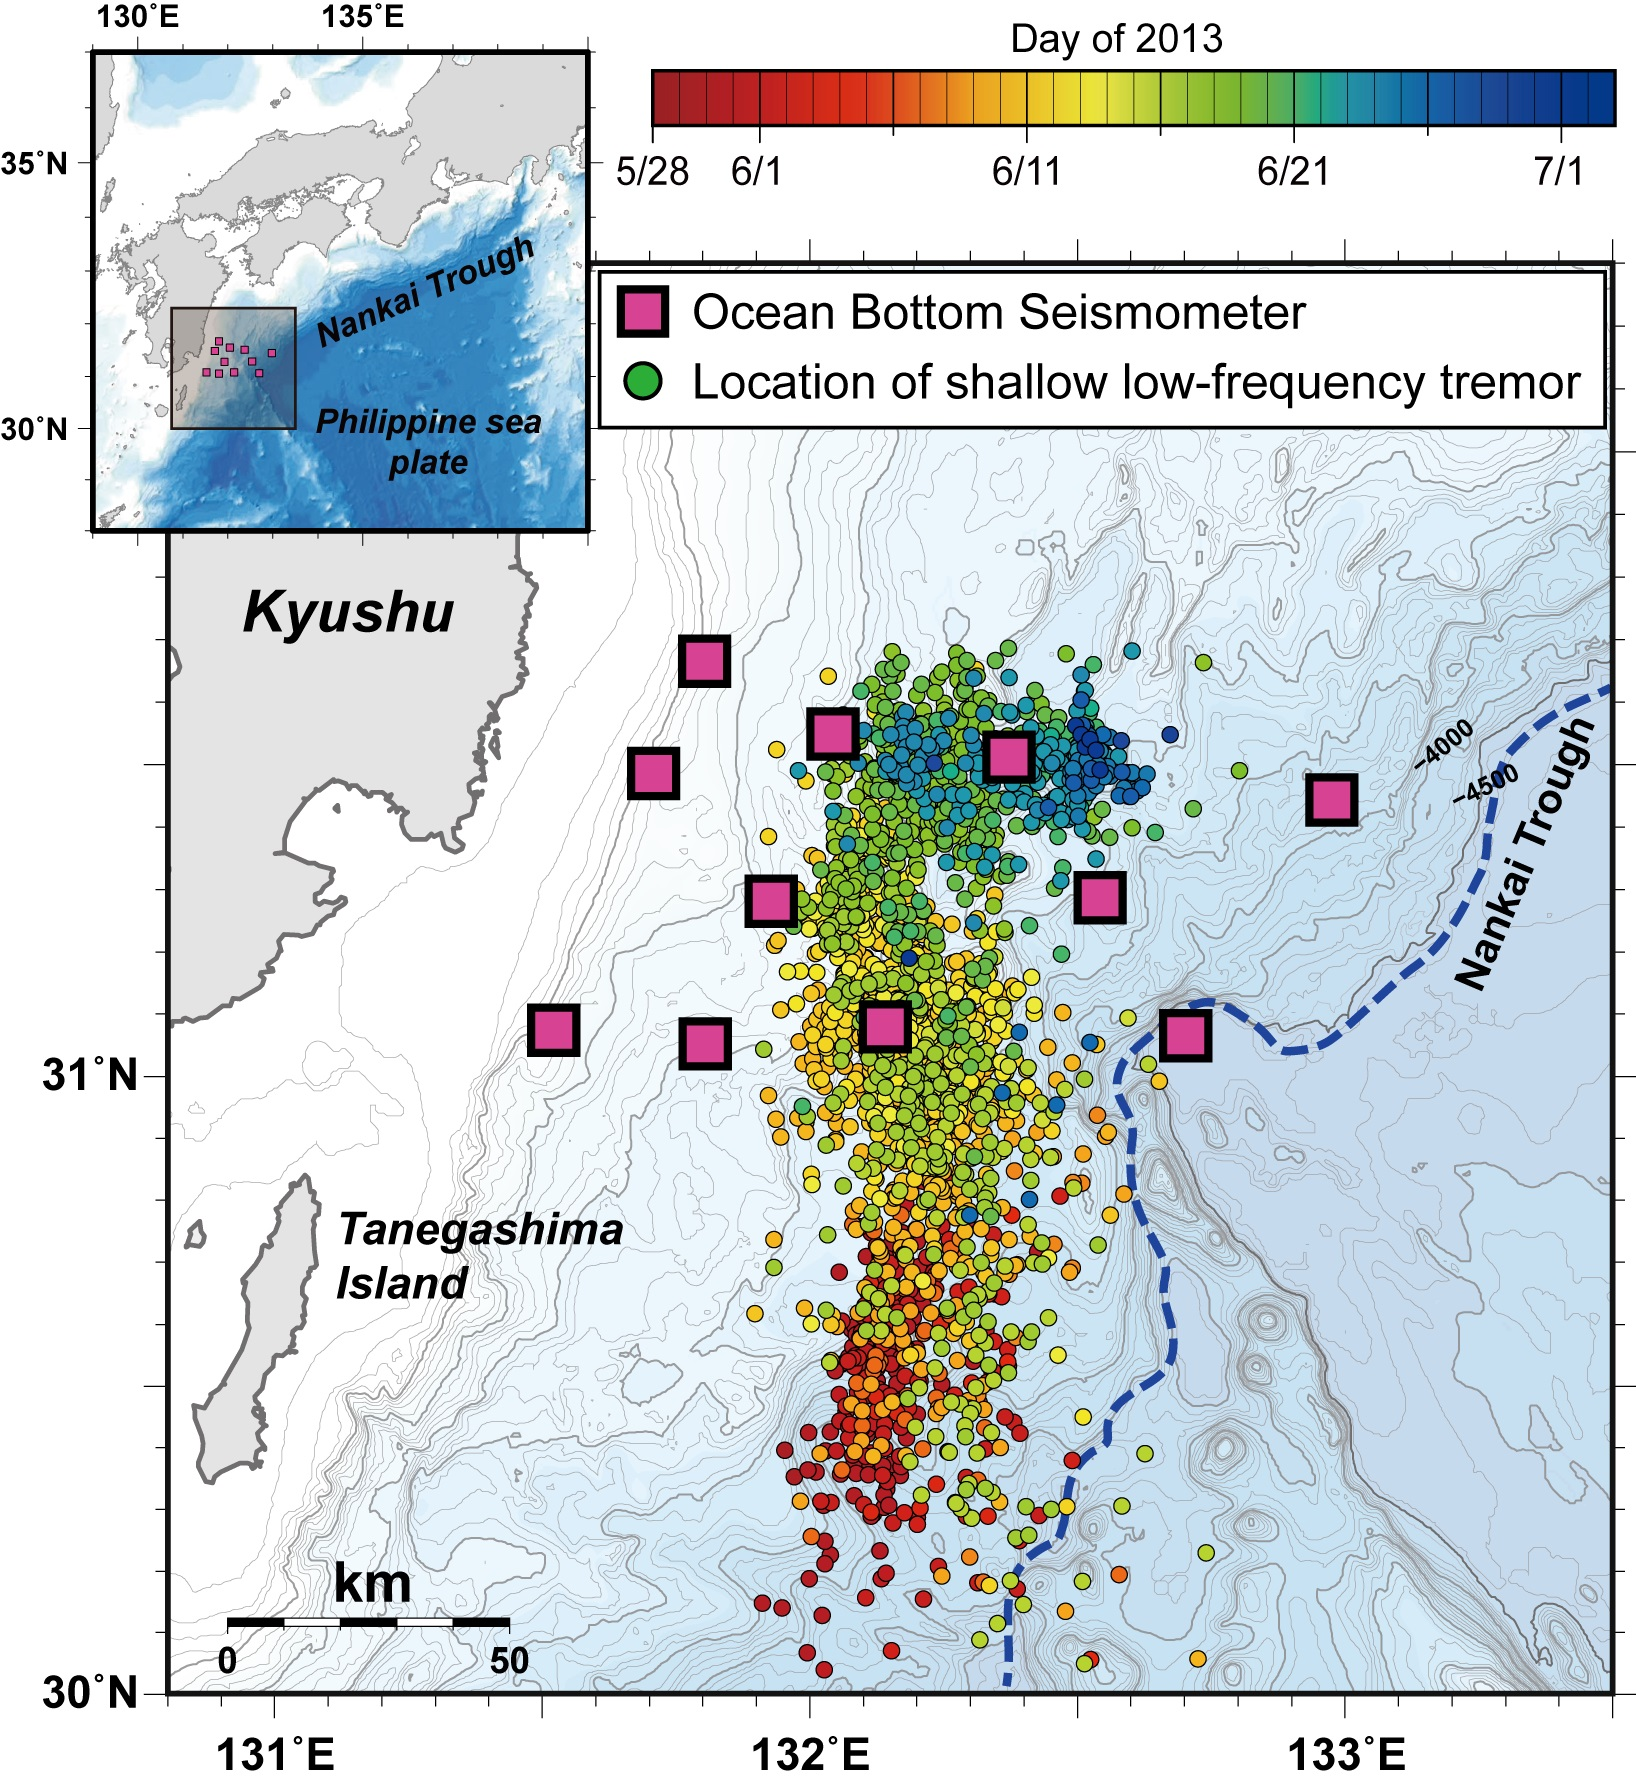 © 2015 Yusuke Yamashita.Yellow squares show the locations of ocean bottom seismometers. Circles indicate the distribution of occurrence of shallow low-frequency tremors, while the color of the circle indicates the time of occurrence.